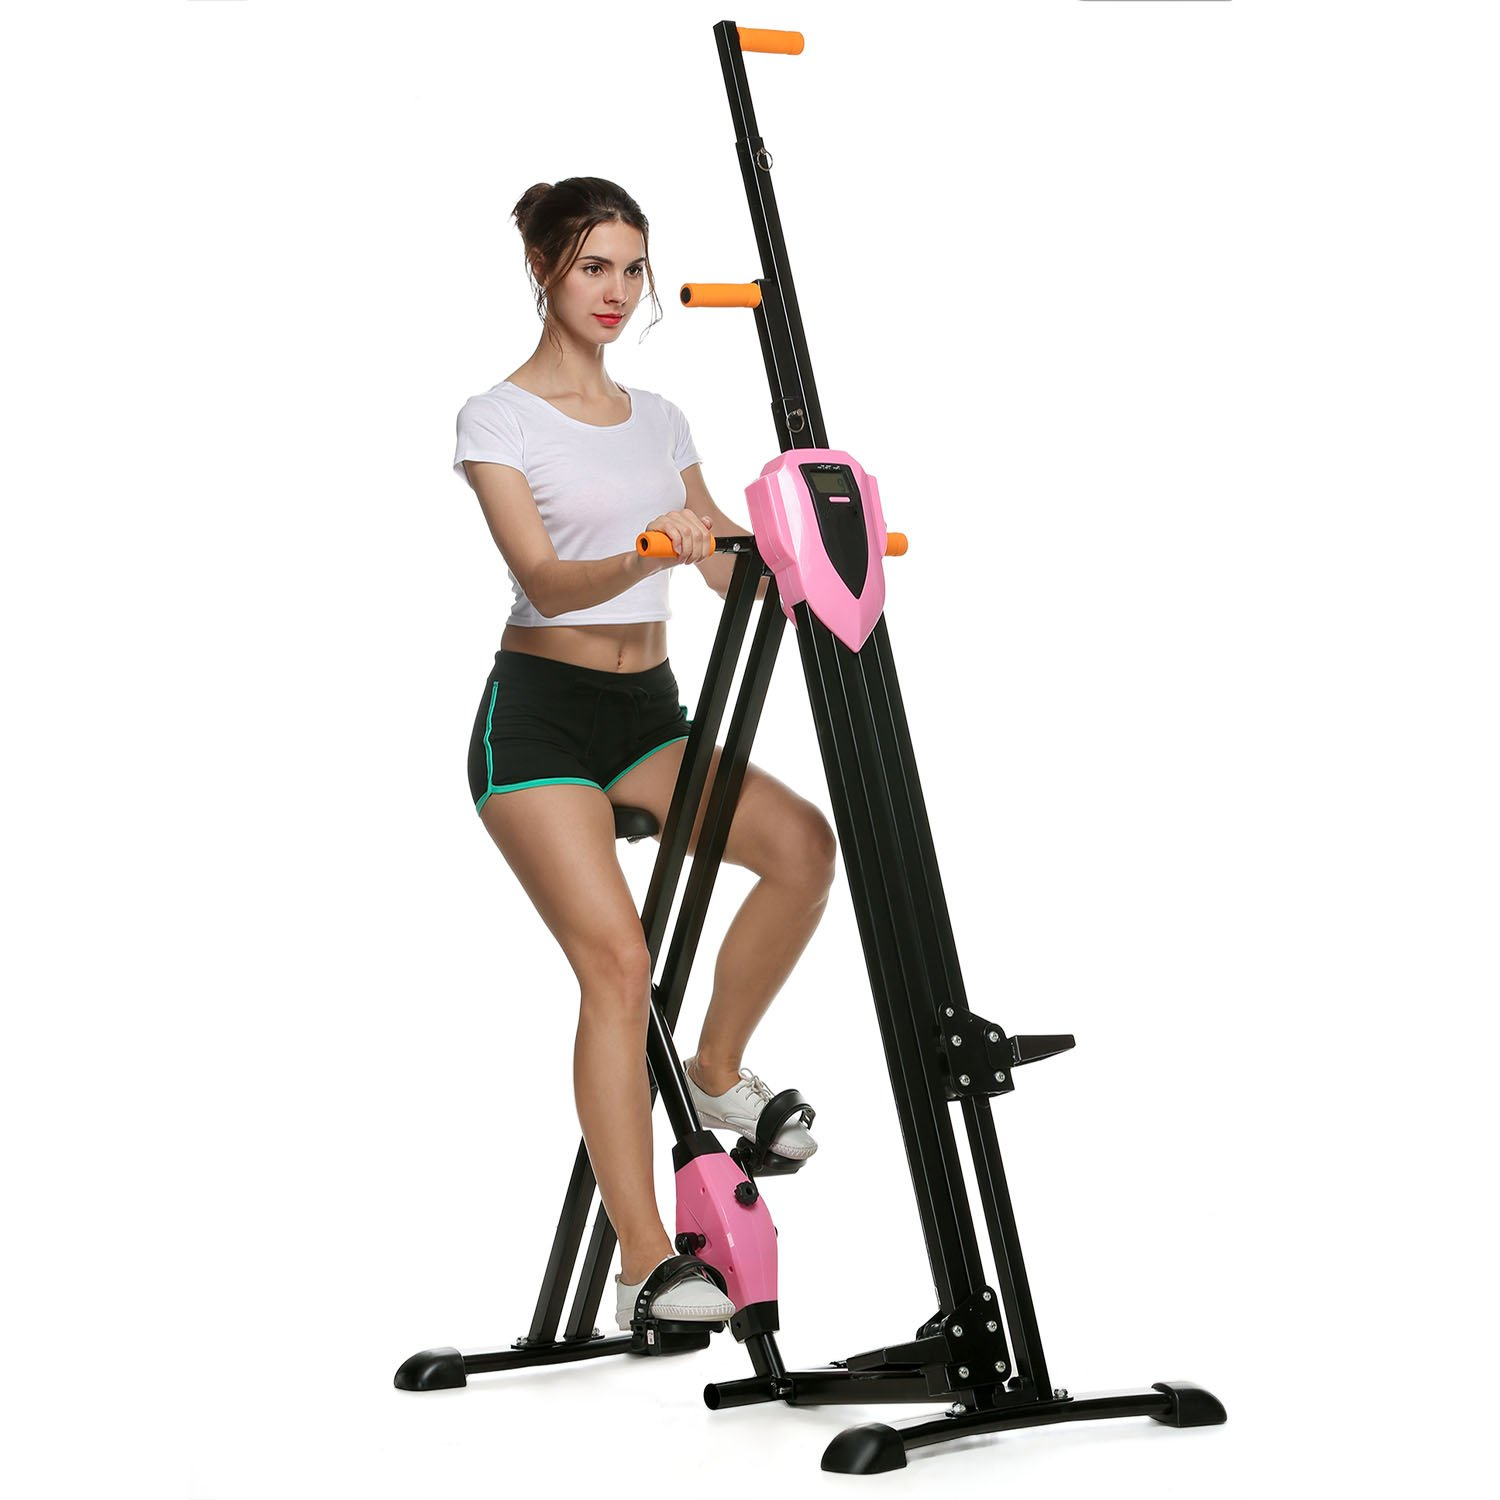 ANCHEER Vertical Climber Folding Exercise Climbing Machine, Exercise Equipment Climber for Home Gym, Exercise Bike for Home Body Trainer (US Stock) (Pink) by ANCHEER